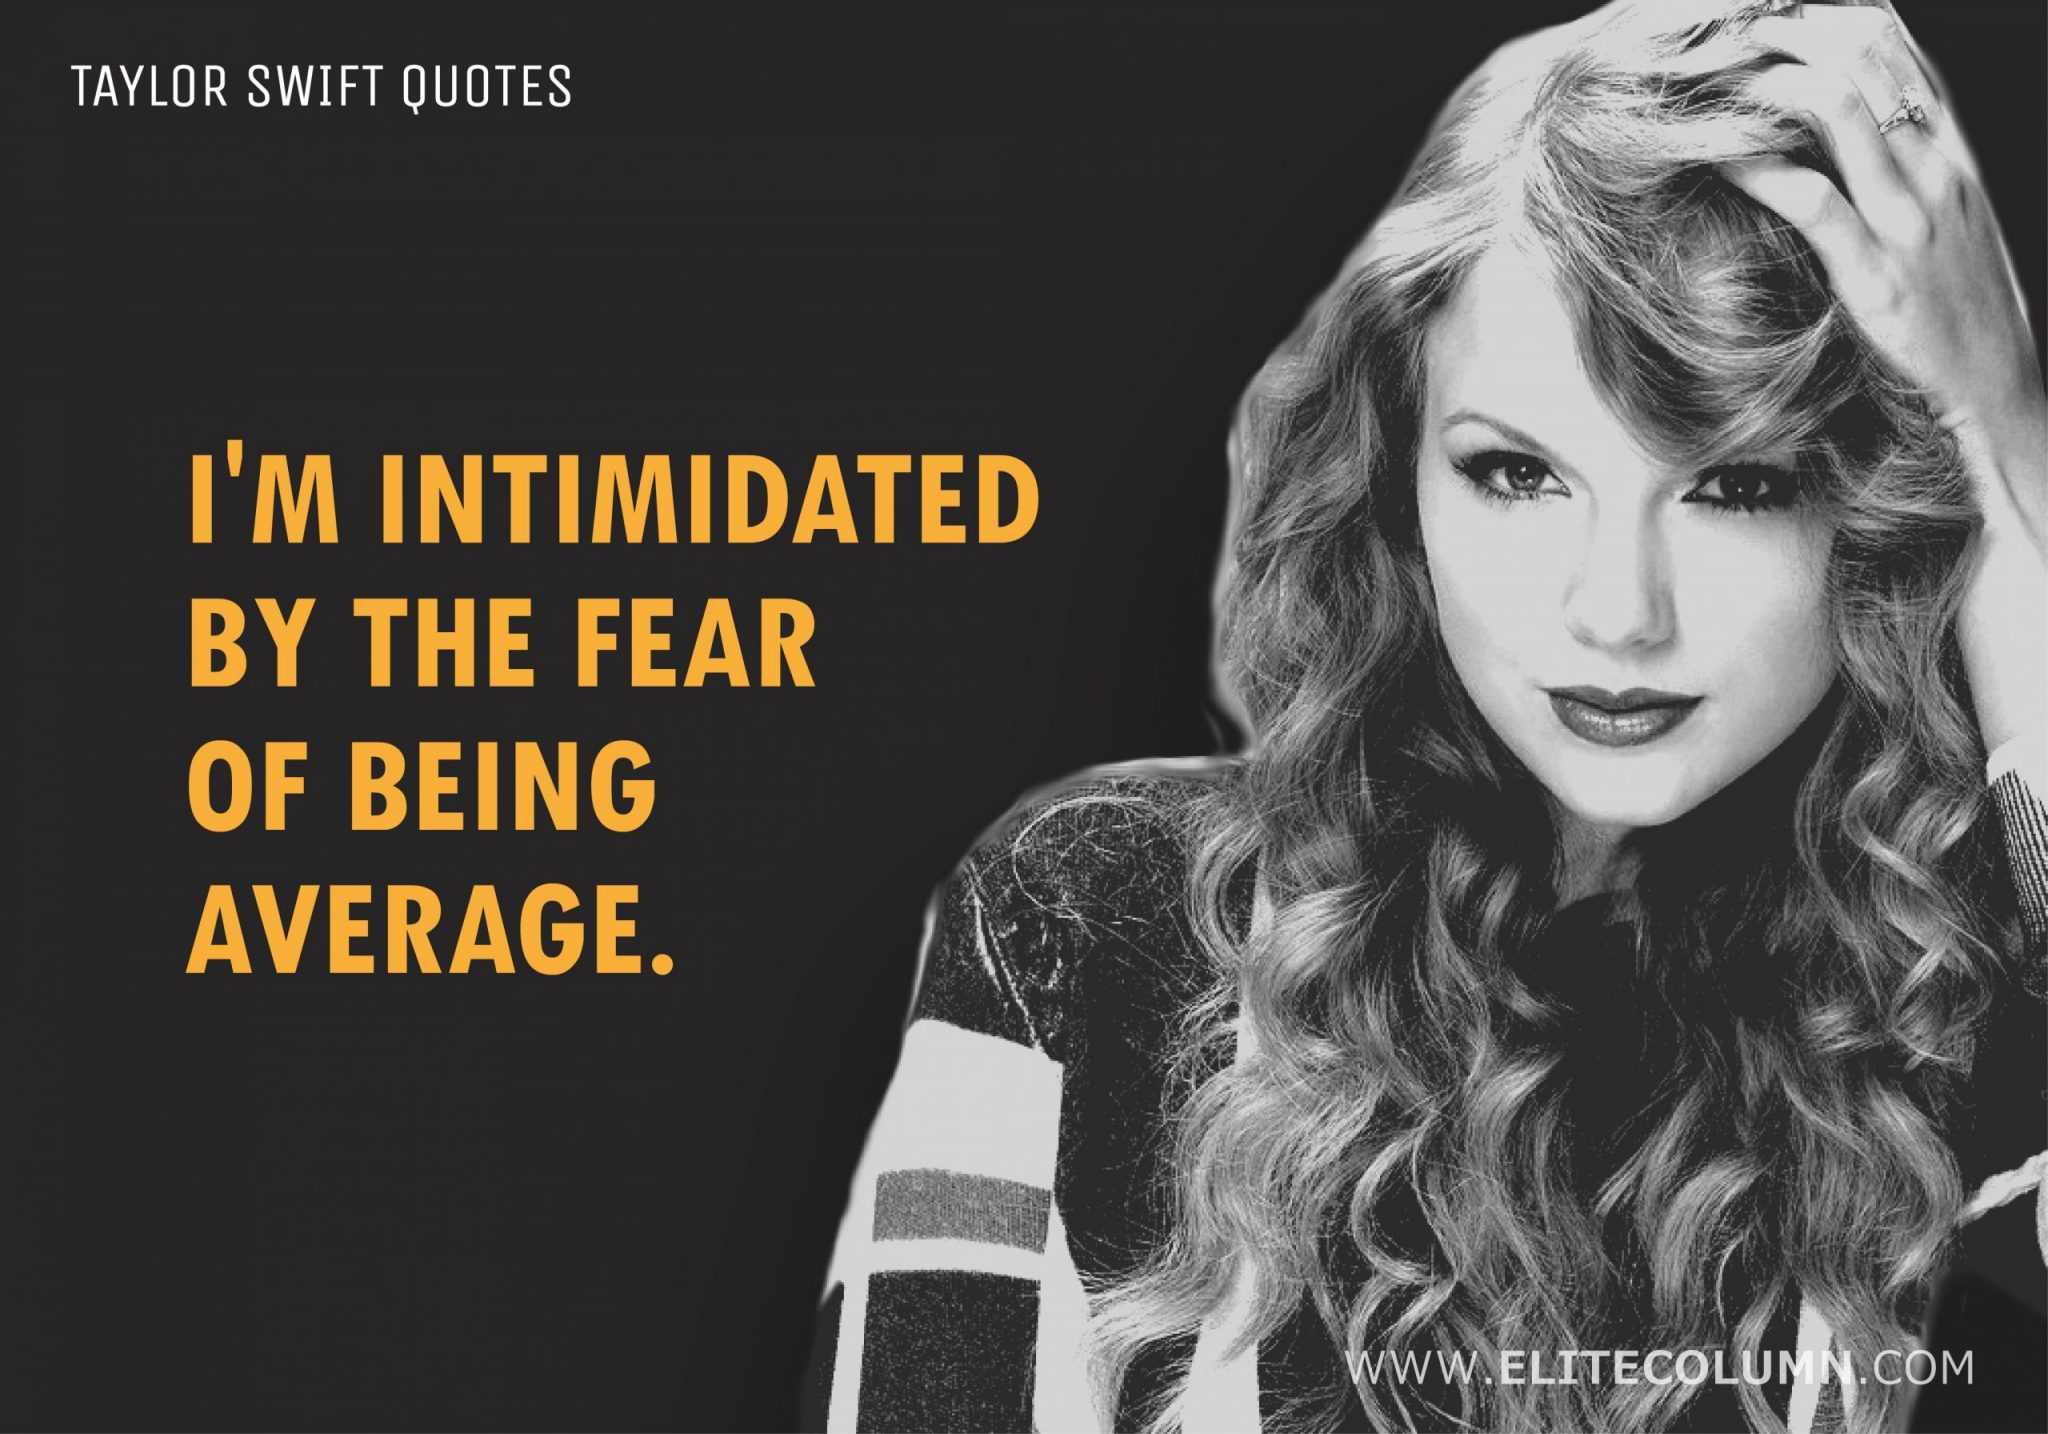 Taylor Swift Quotes (2)